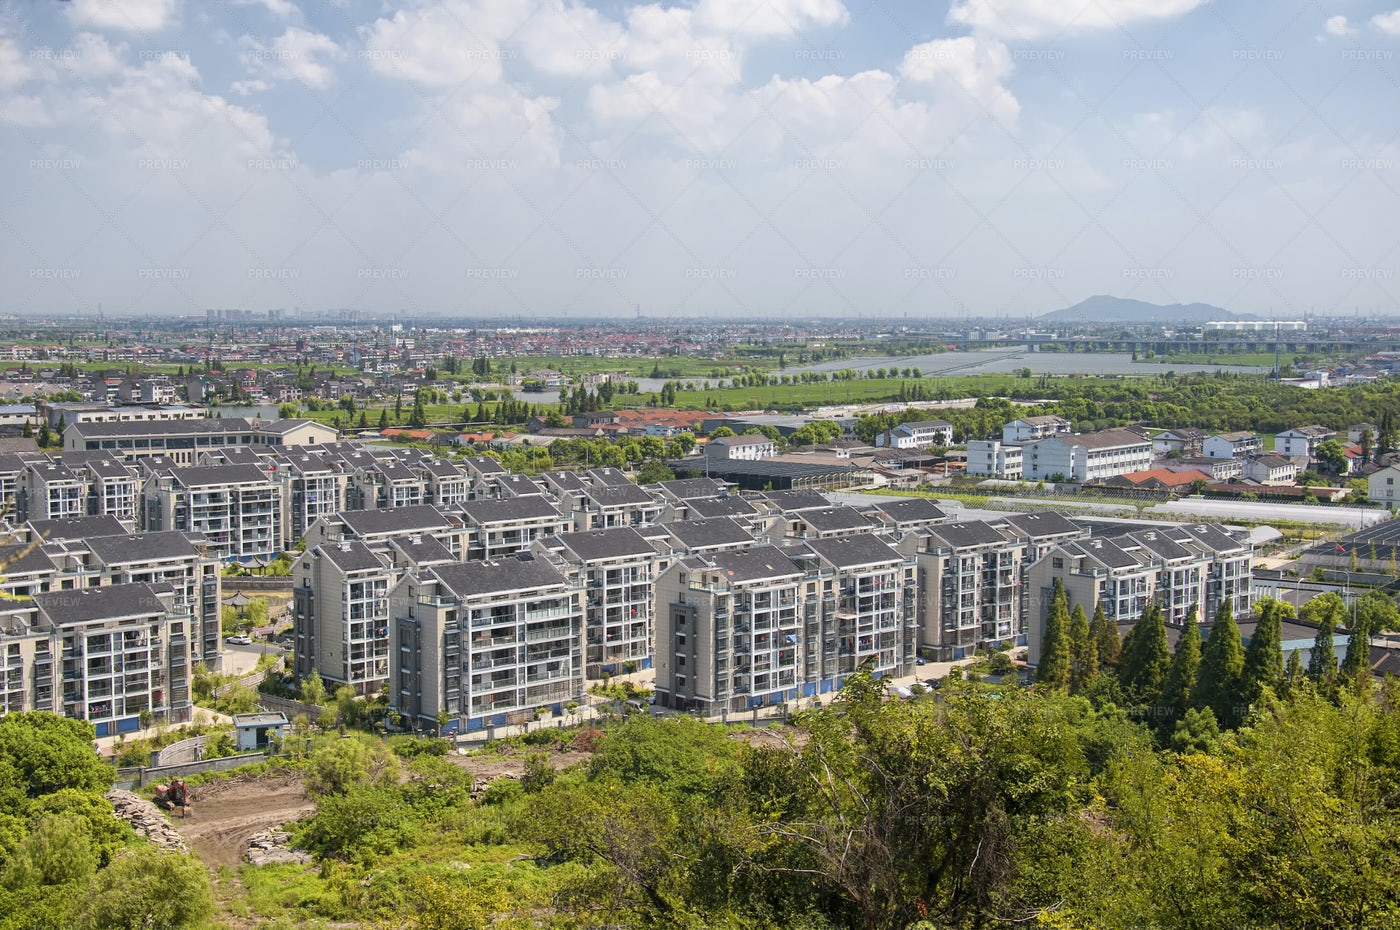 Shaoxing's Residential Area: Stock Photos